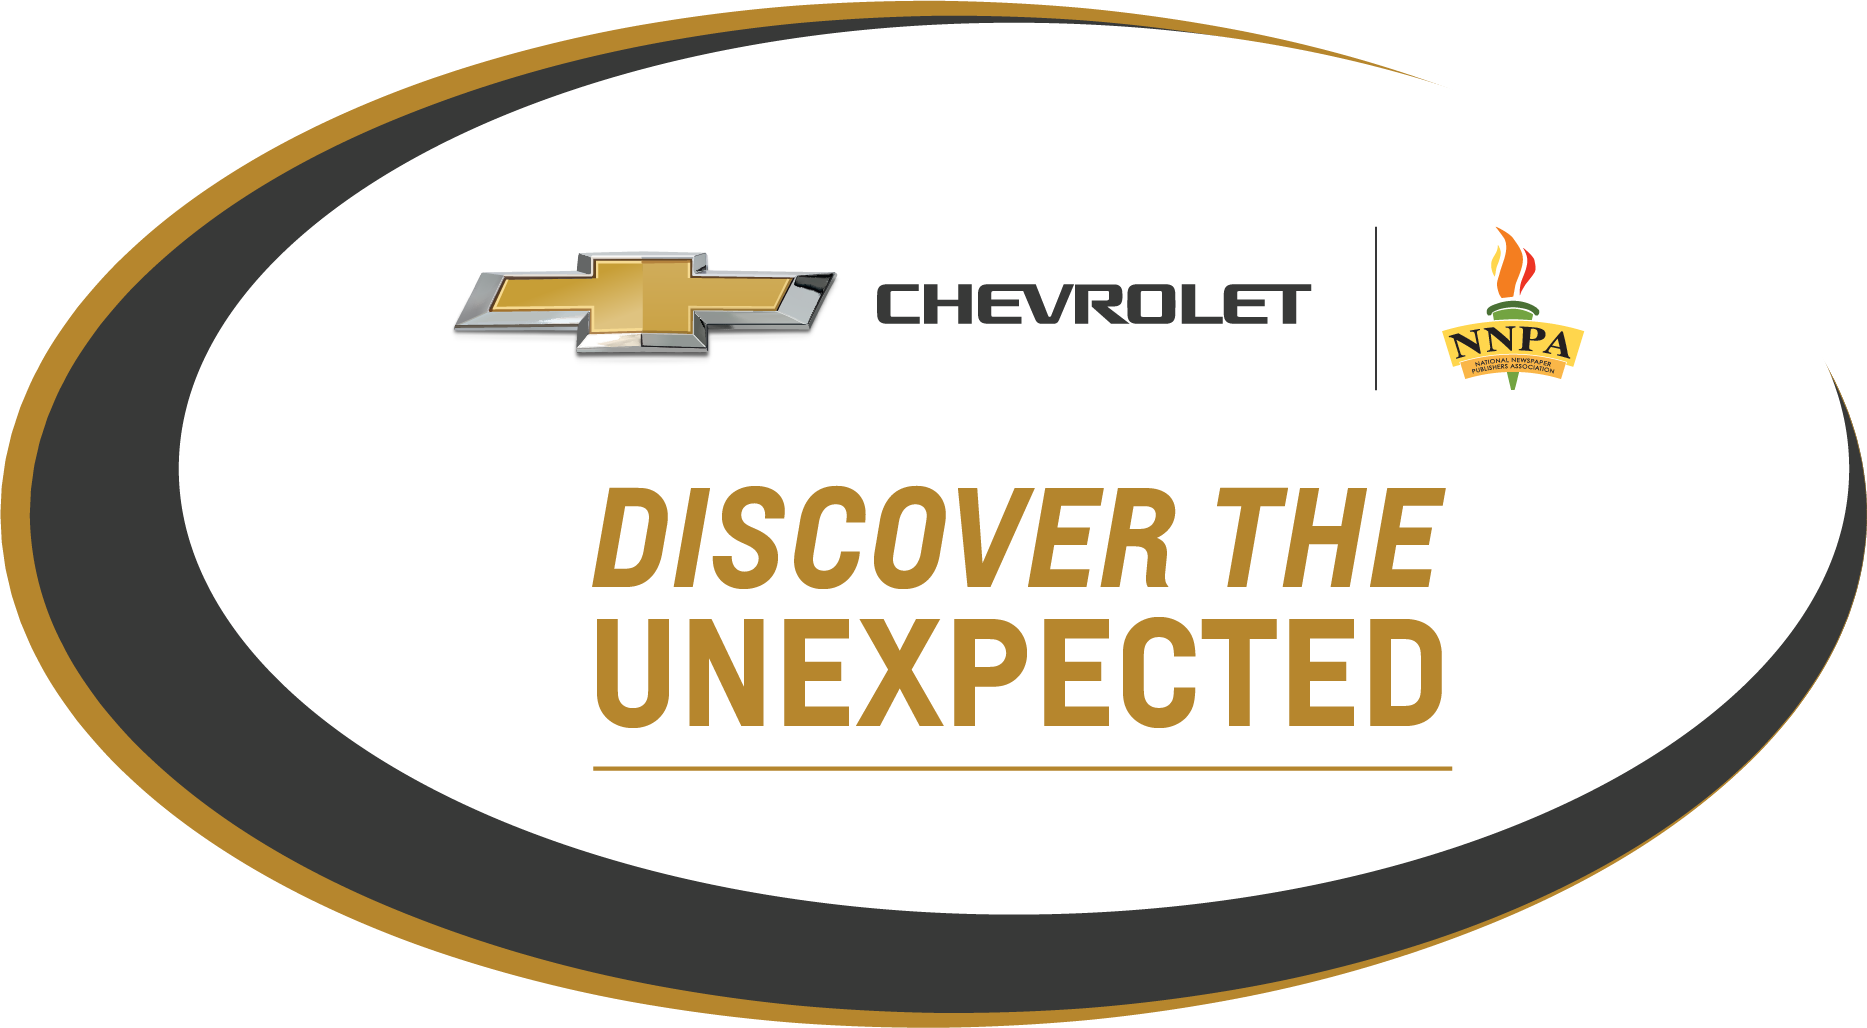 NNPA | Chevrolet Discover the Unexpected